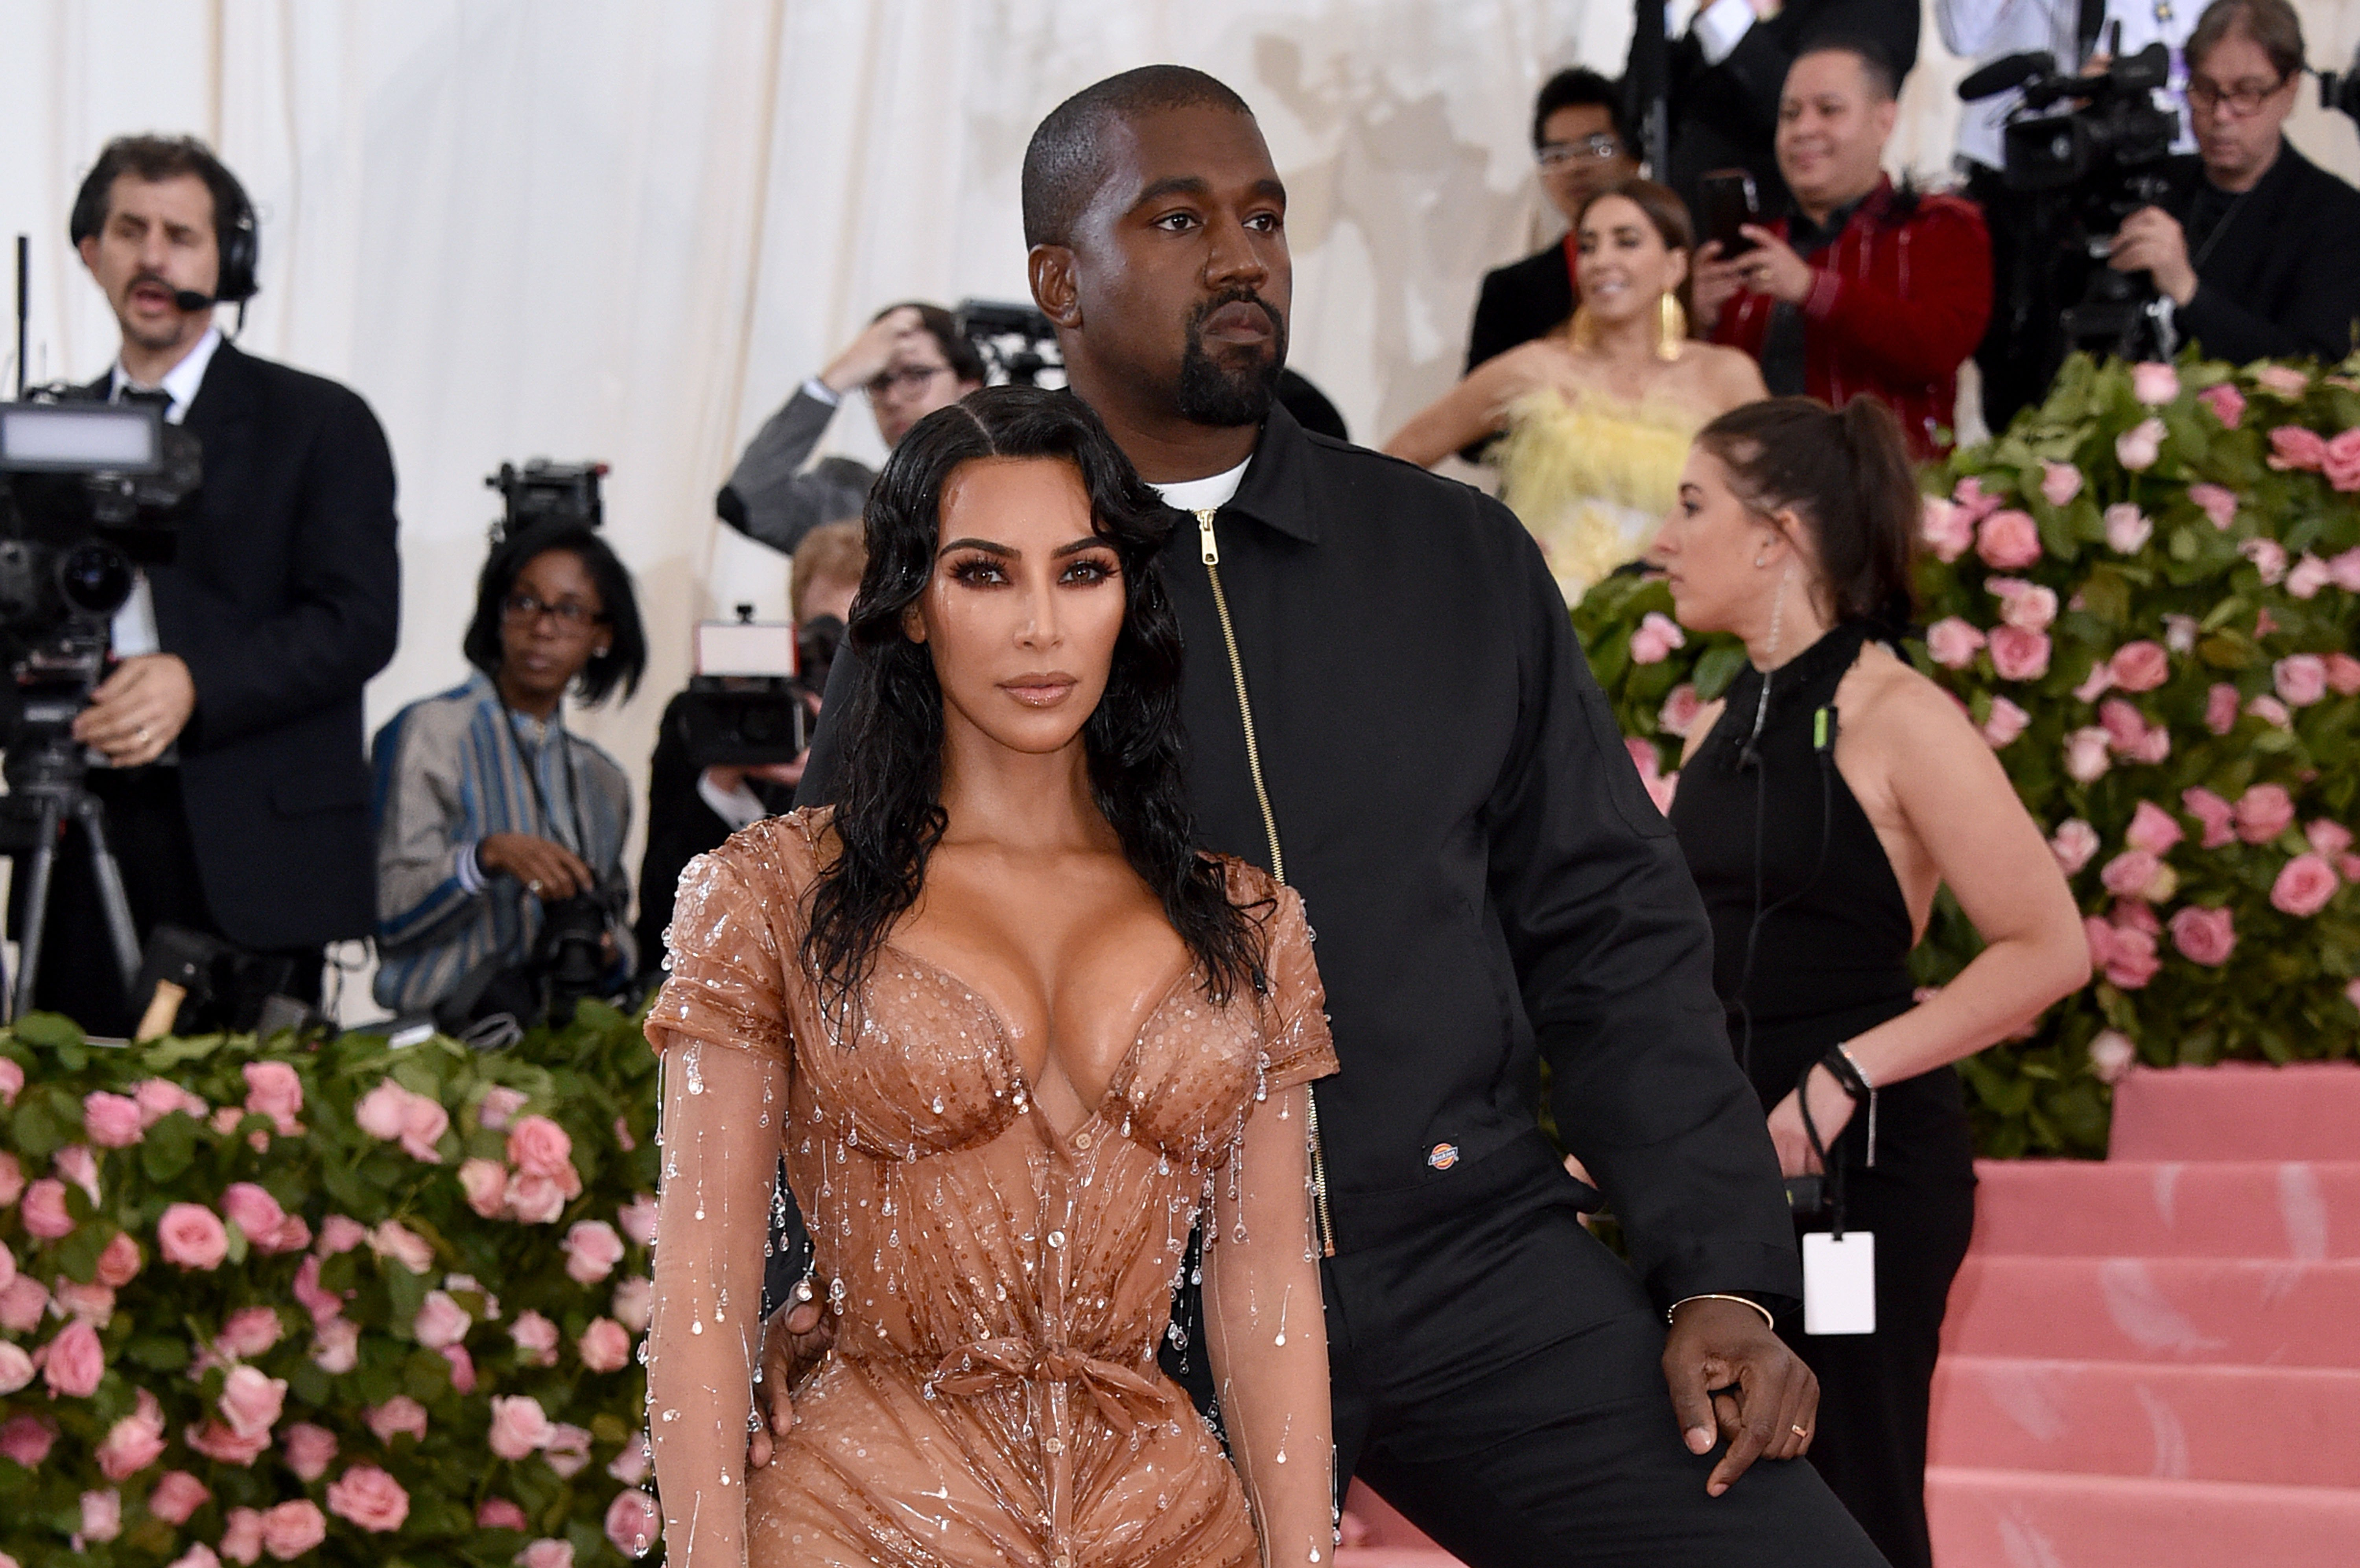 Kanye West and Kim Kardashian on the red carpet at the 2019 Met Gala, New York. | Photo: Getty Images